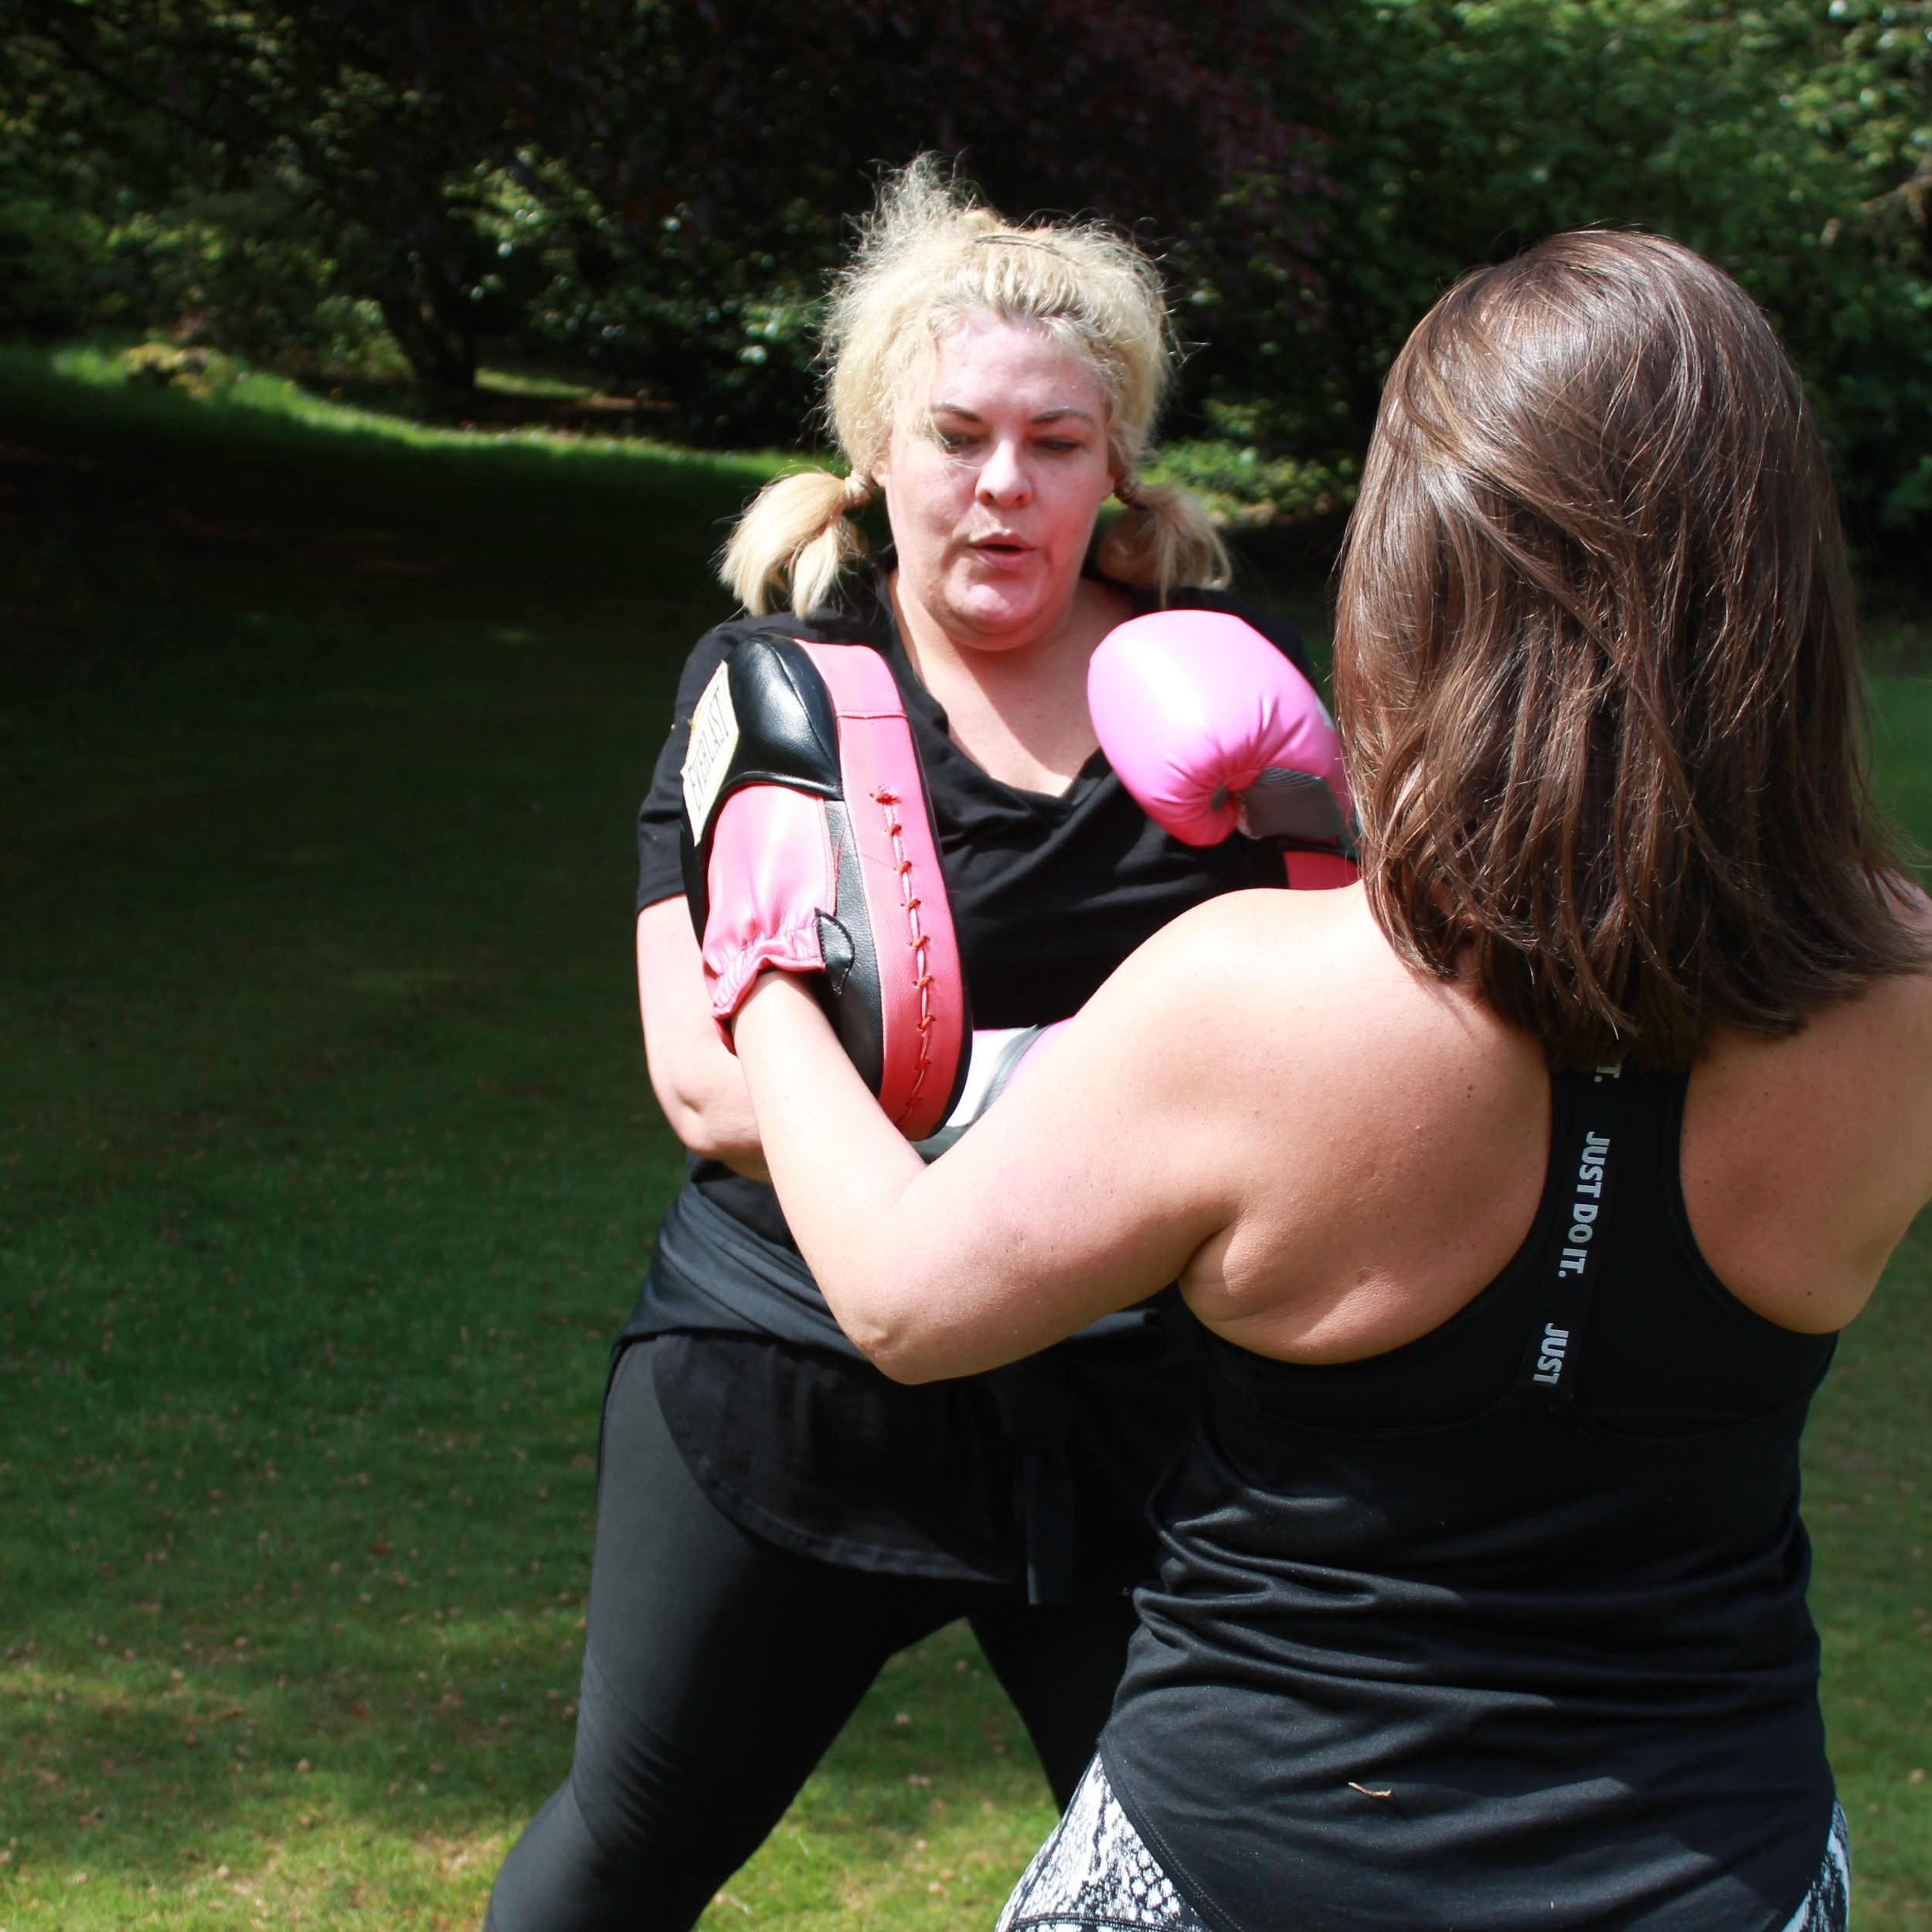 Trish - Trish is training for her black belt in karate, but her weight and fitness plateaued. She wanted a boost to her metabolism and fitness to help get ready for the all important day.She lost 8lbs (3.6kg) in just 4 days and couldn't be happier.